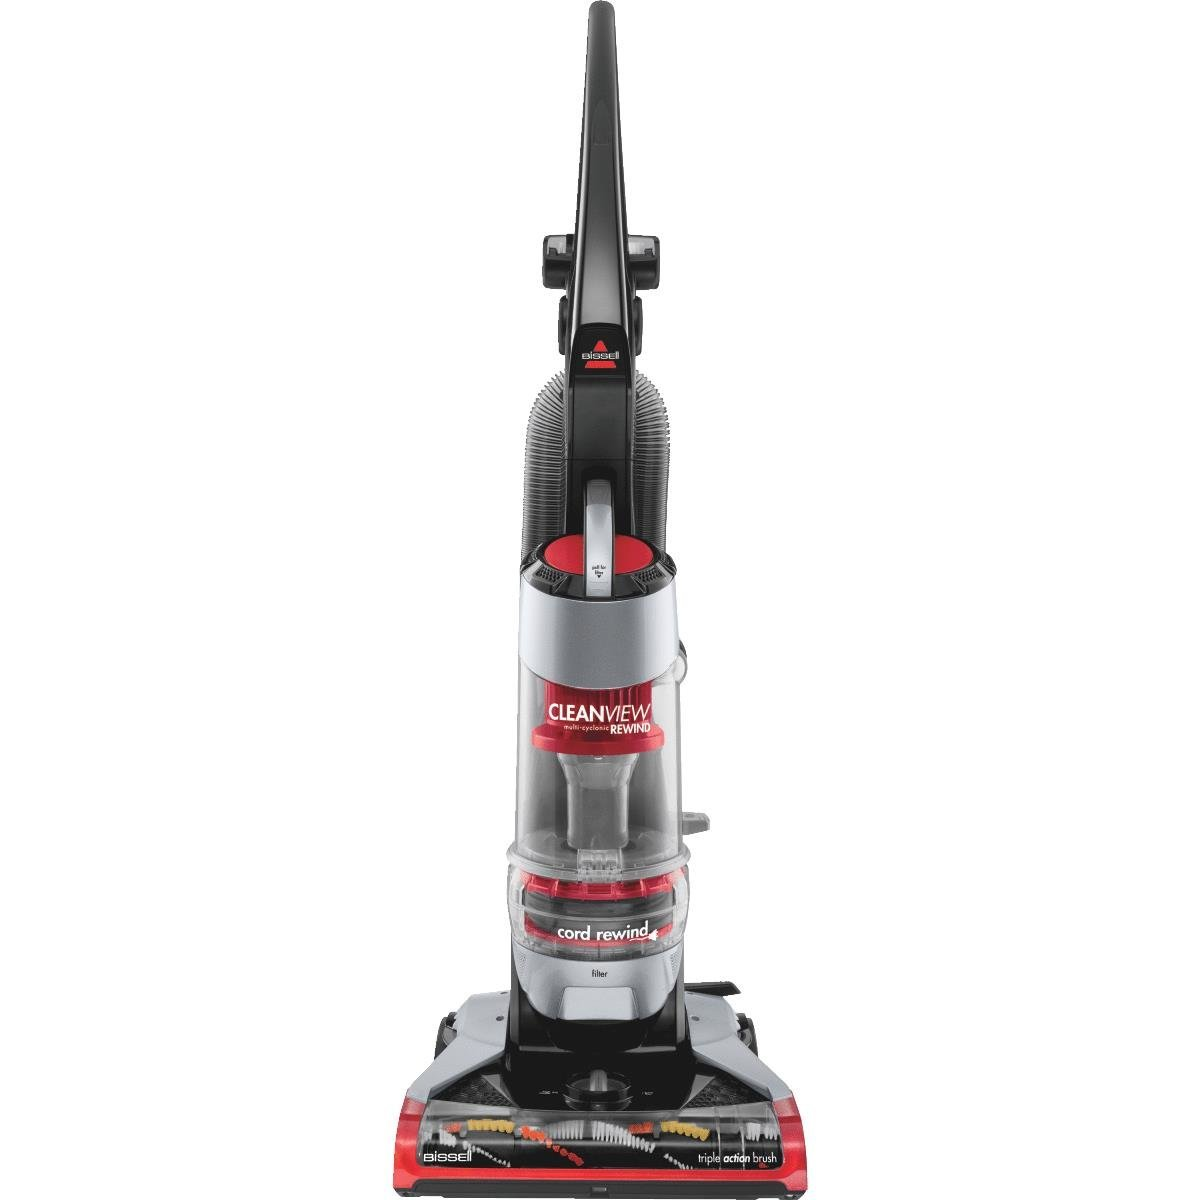 Bissell CleanView Plus Rewind Upright Bagless Vacuum